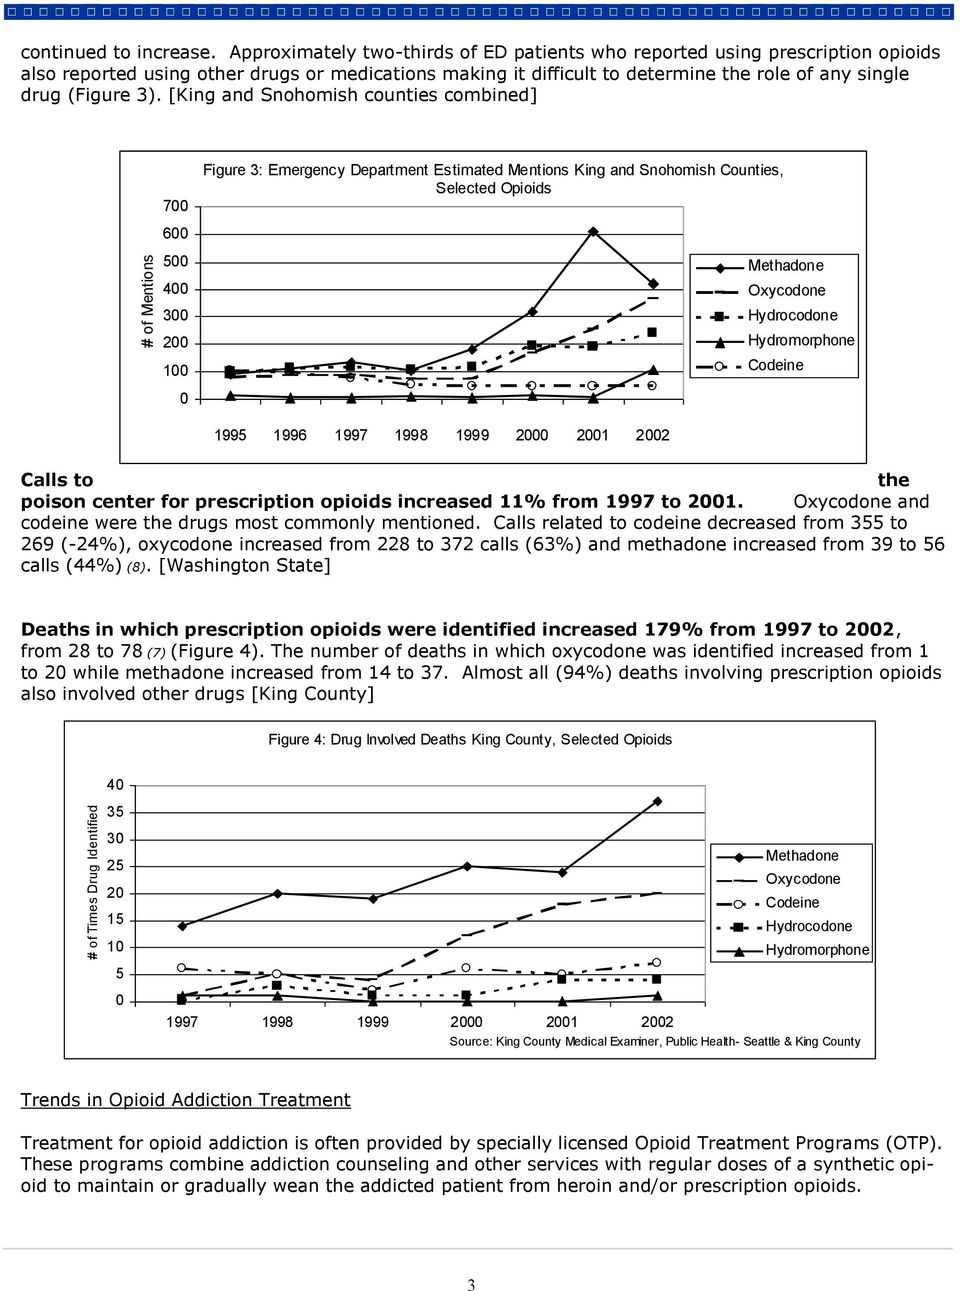 [King and Snohomish counties combined] 7 6 5 4 3 2 1 Figure 3: Emergency Department Estimated Mentions King and Snohomish Counties, Selected Opioids Hydrocodone Hydromorphone Codeine 1995 1996 1997